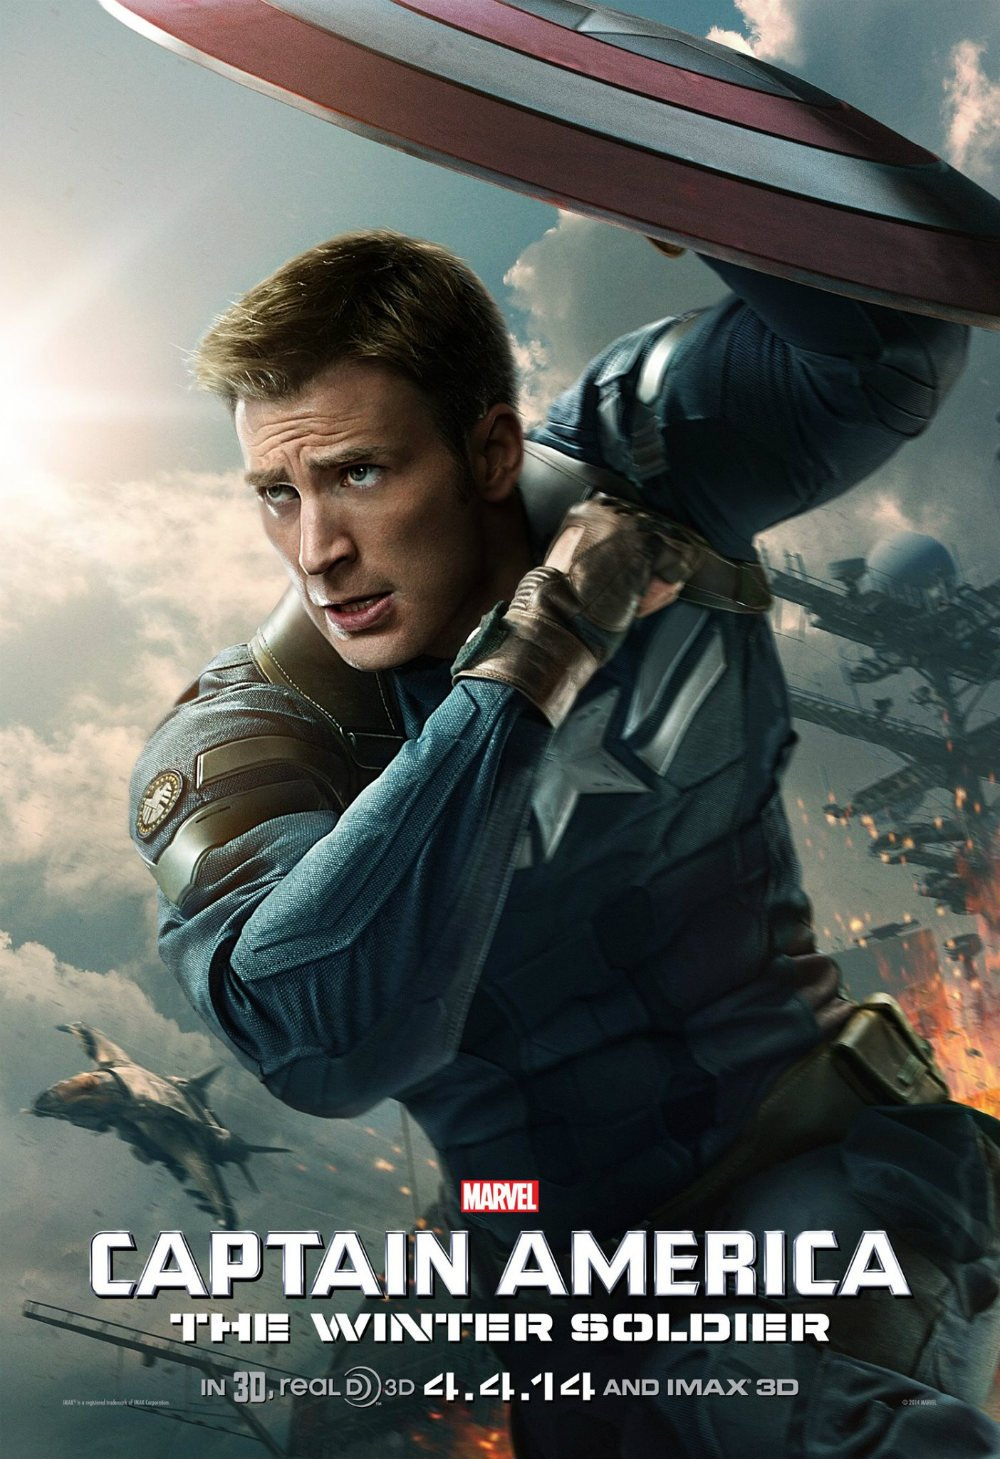 Summary summary the new captain america movie the winter soldier finds